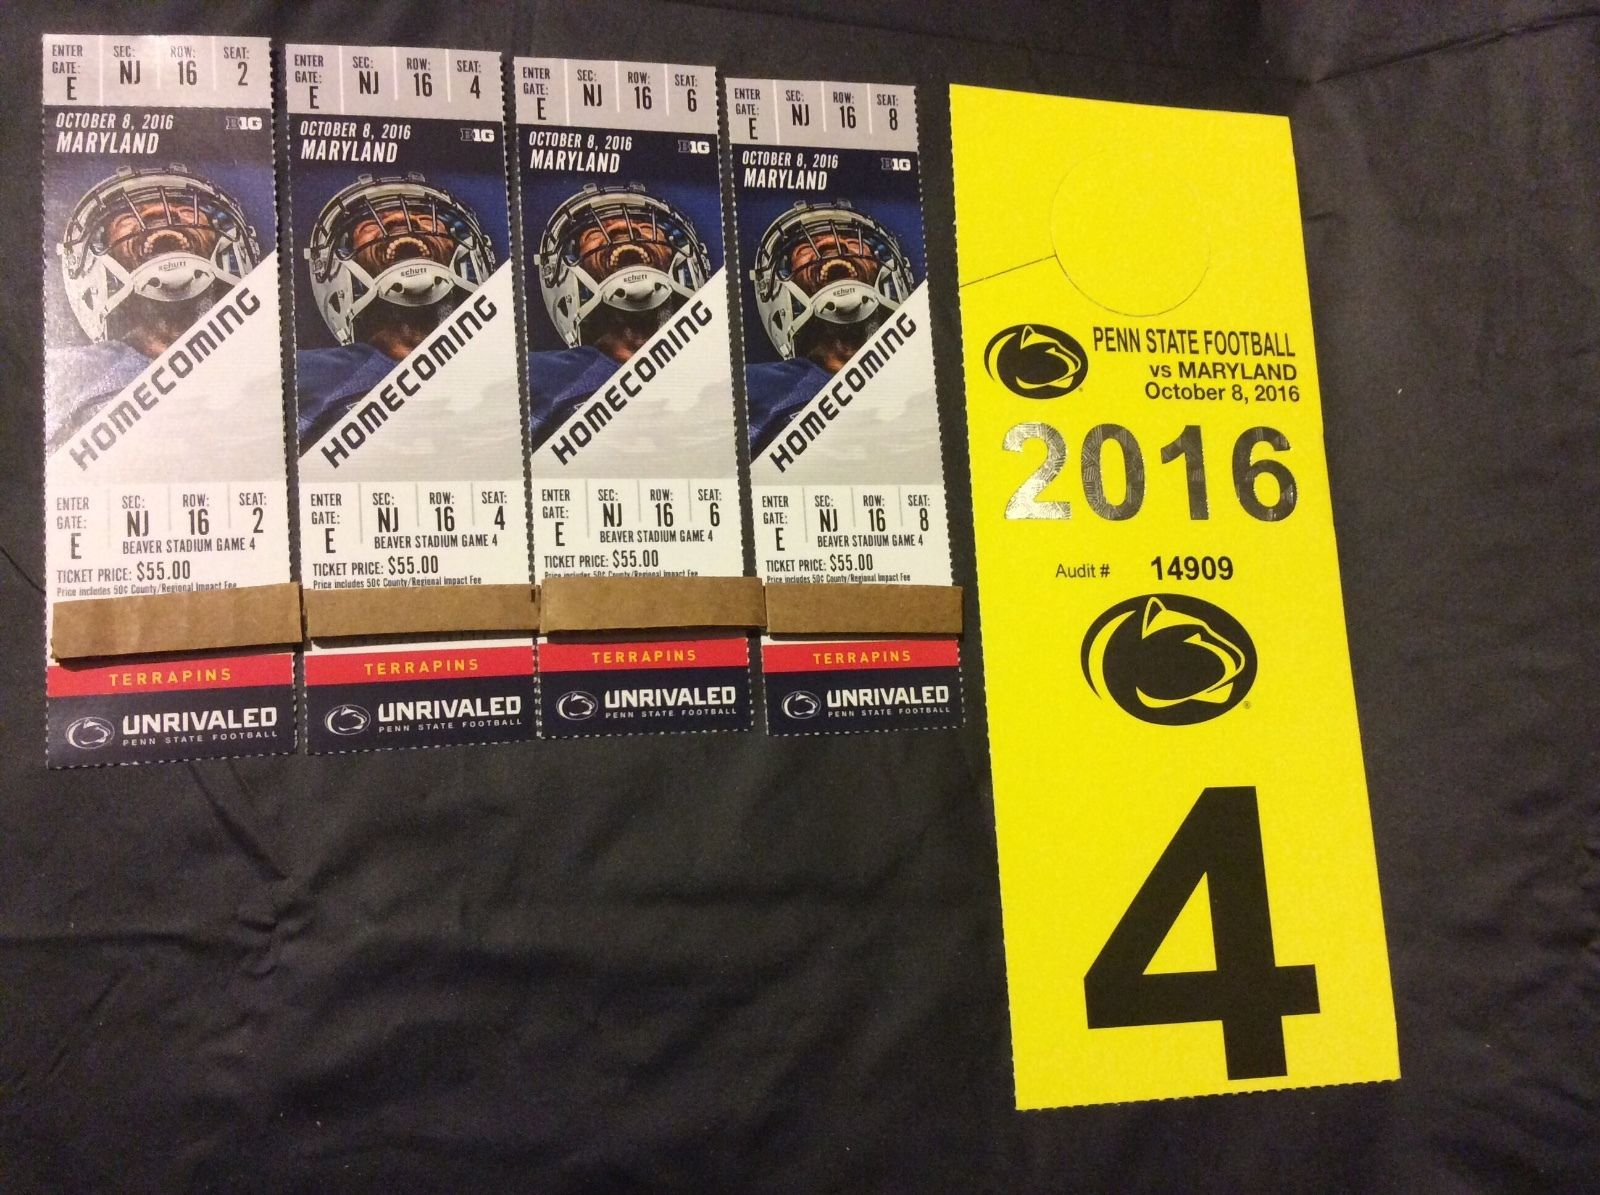 Tickets 4 Penn State Football Tickets Vs Maryland Parking Aisle